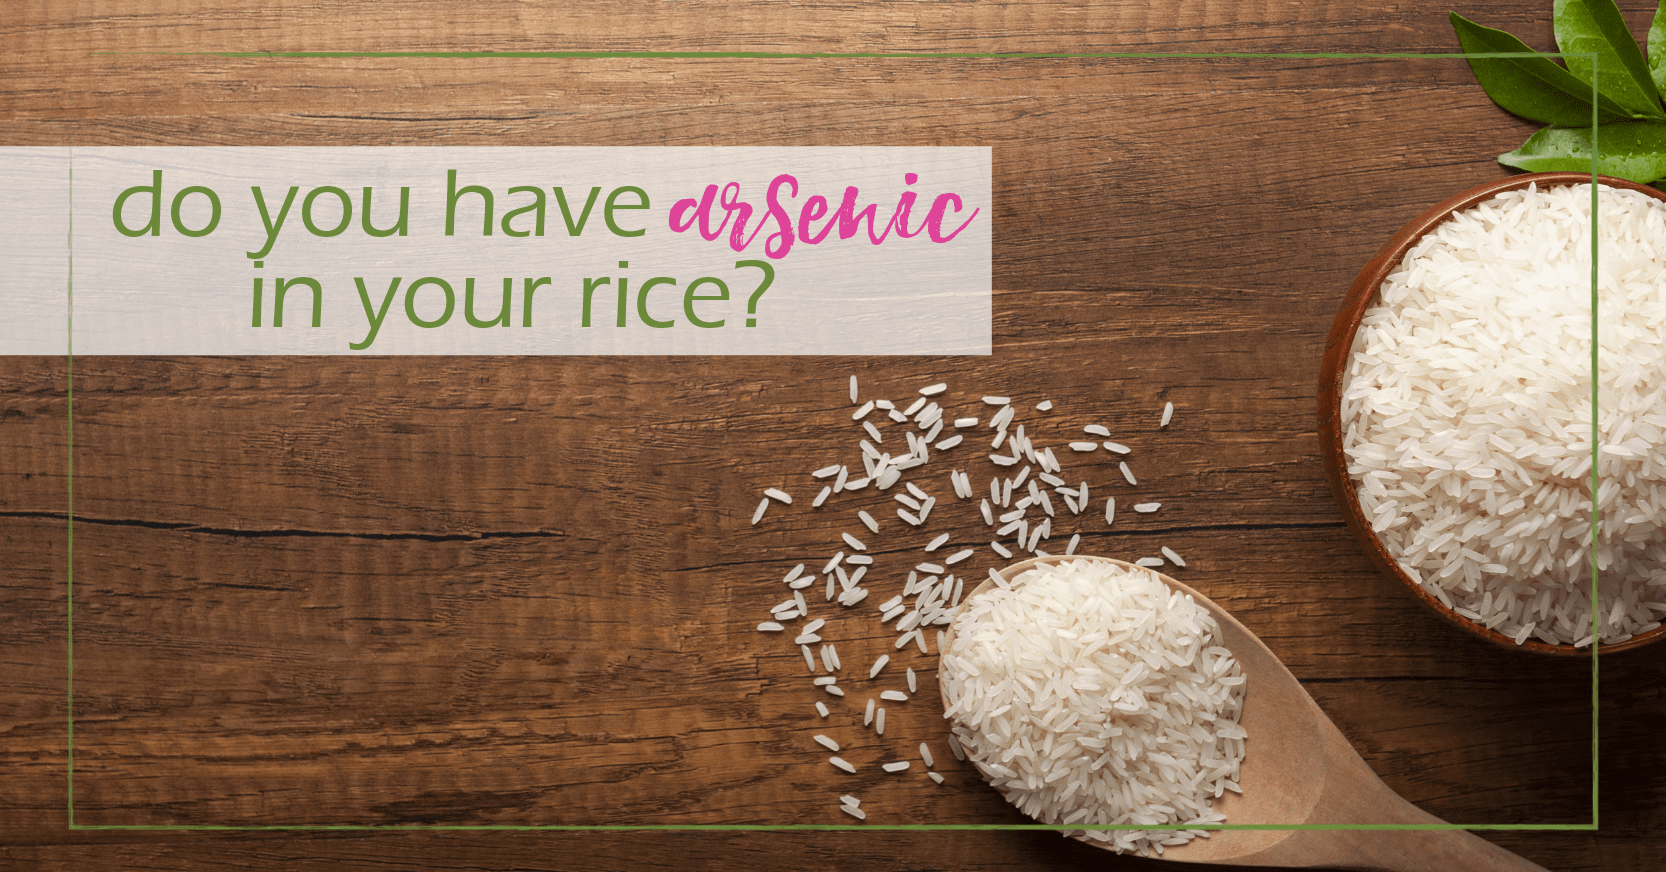 arsenic in your rice